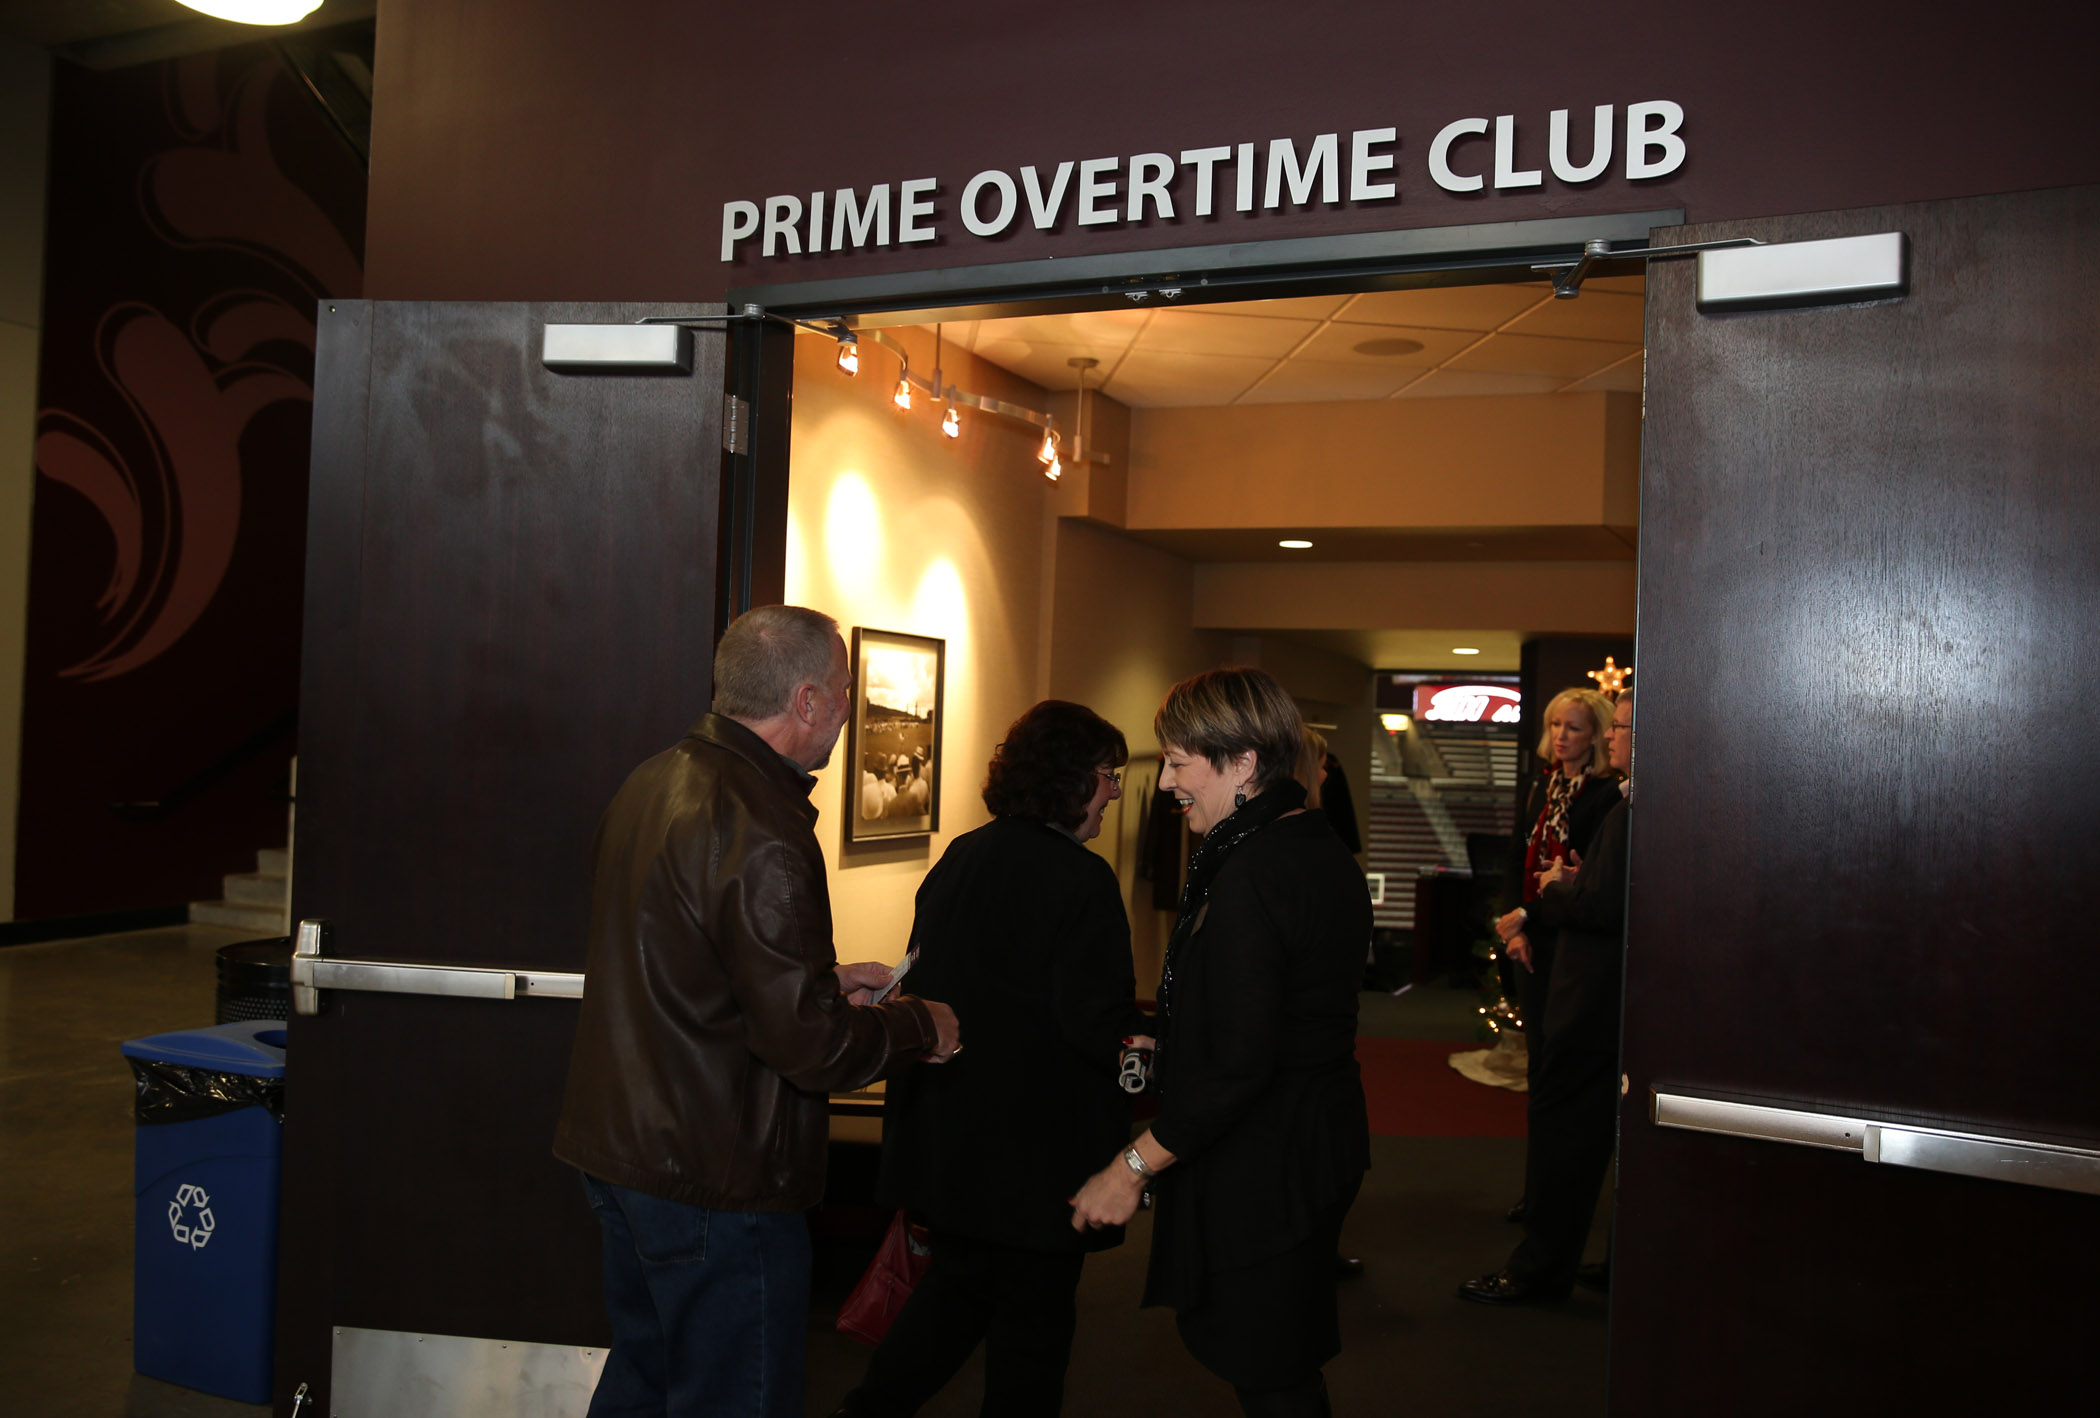 Prime Overtime Club Buffet Menu – Feb. 24, 25, 26